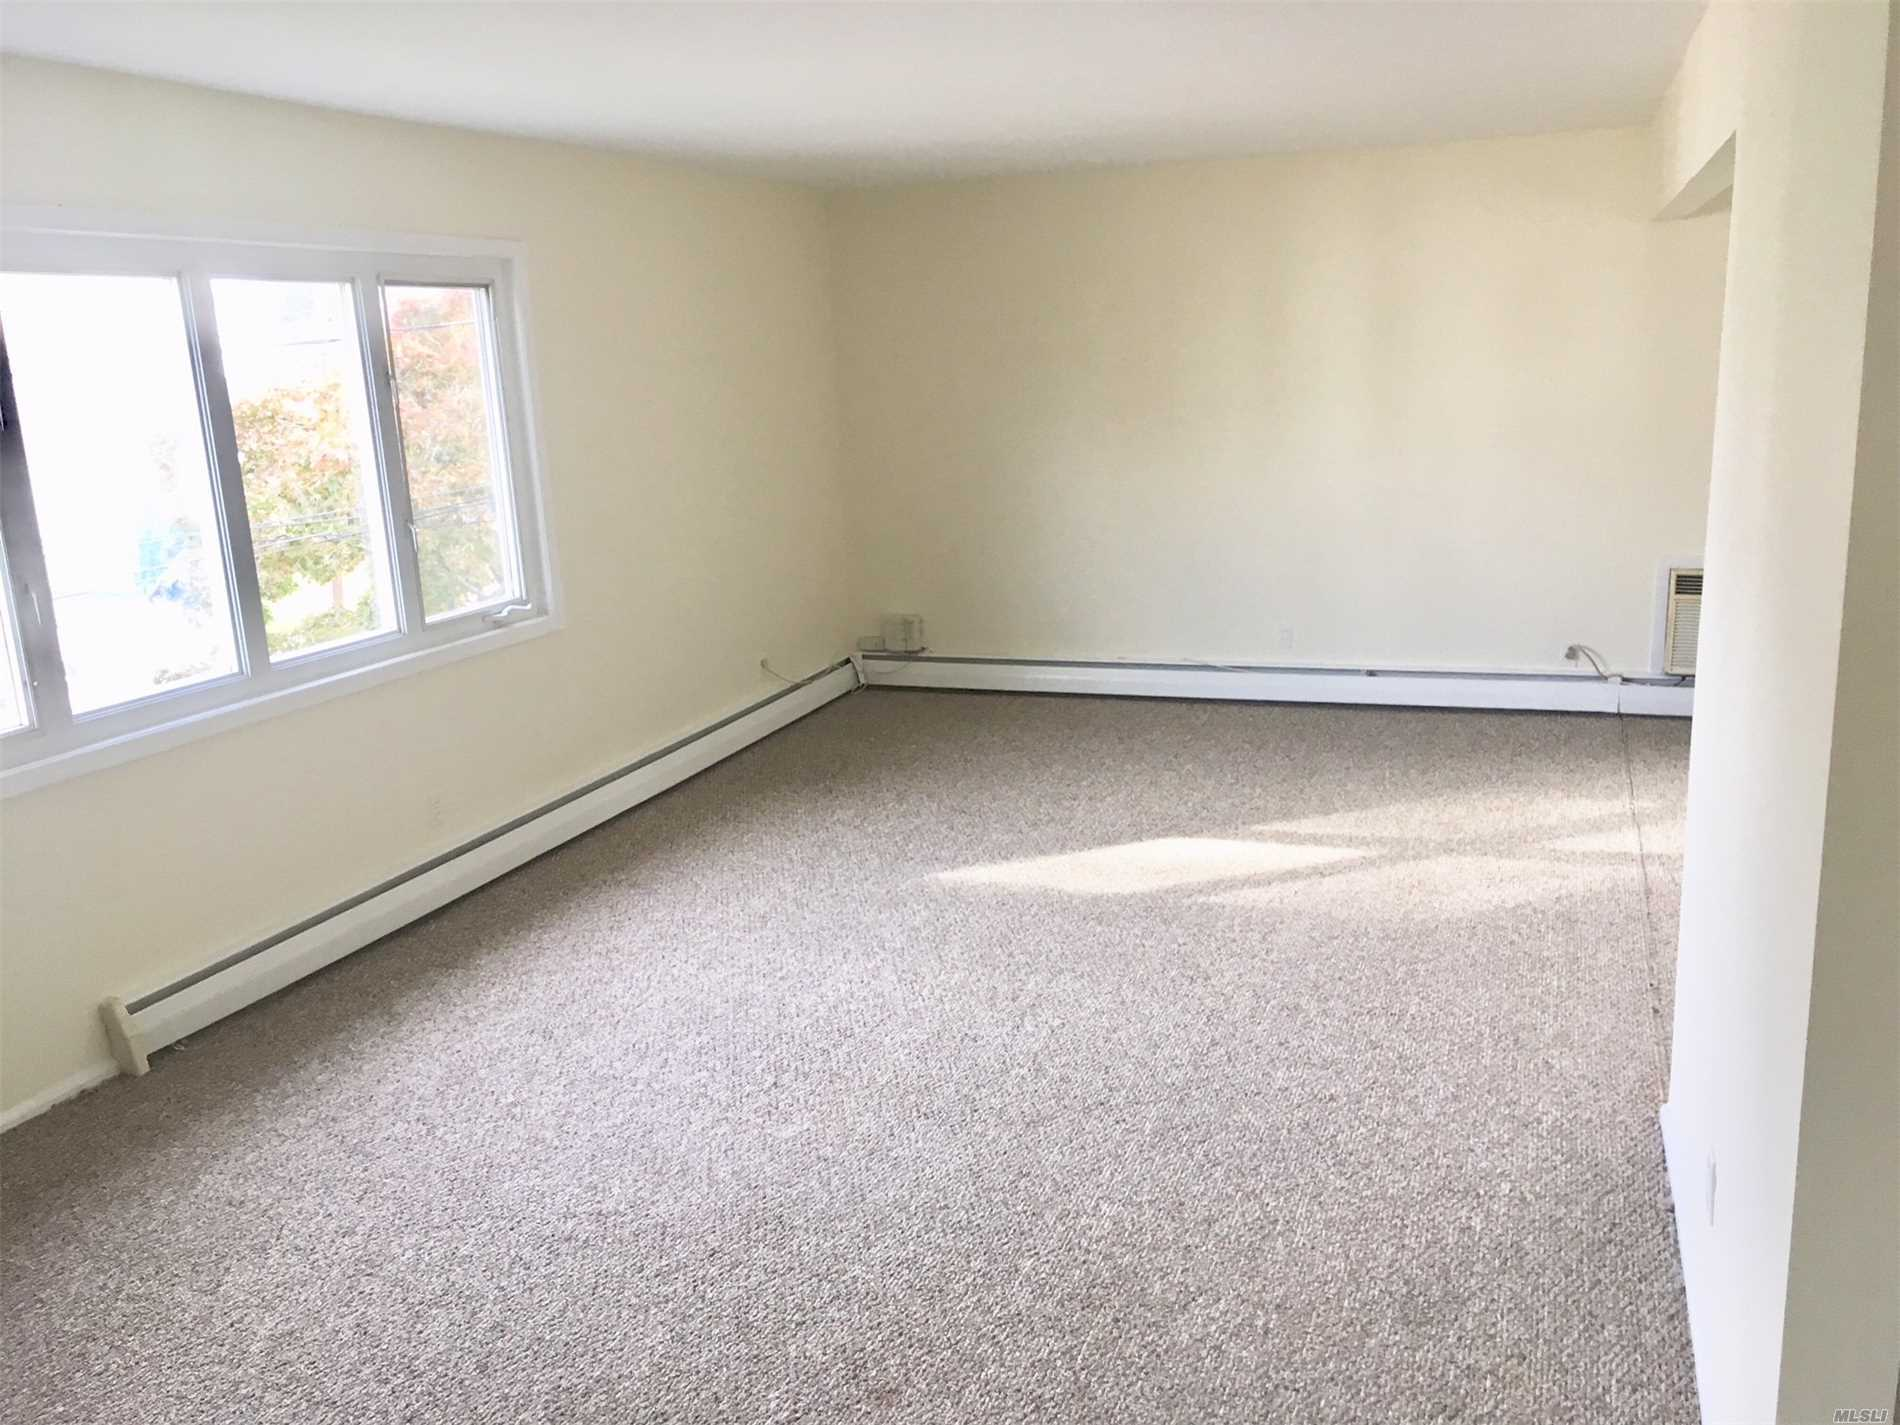 Rental: 2 Bed, 1 Bath Apartment With Large Living Room, Dining Room And Eat In Kitchen. This Apartment Is On The 2nd Floor Of A Private House. Plenty Of Closet Space, Wall To Wall Carpeting. Tenant Pays Own Electric, Cooking Gas, Cable & Renter Ins . Includes 1 Park Spot. No Pets, No Smoking,  No Subletting. Walk 1 Block To The Gibson Lirr Station. Close To Shopping.